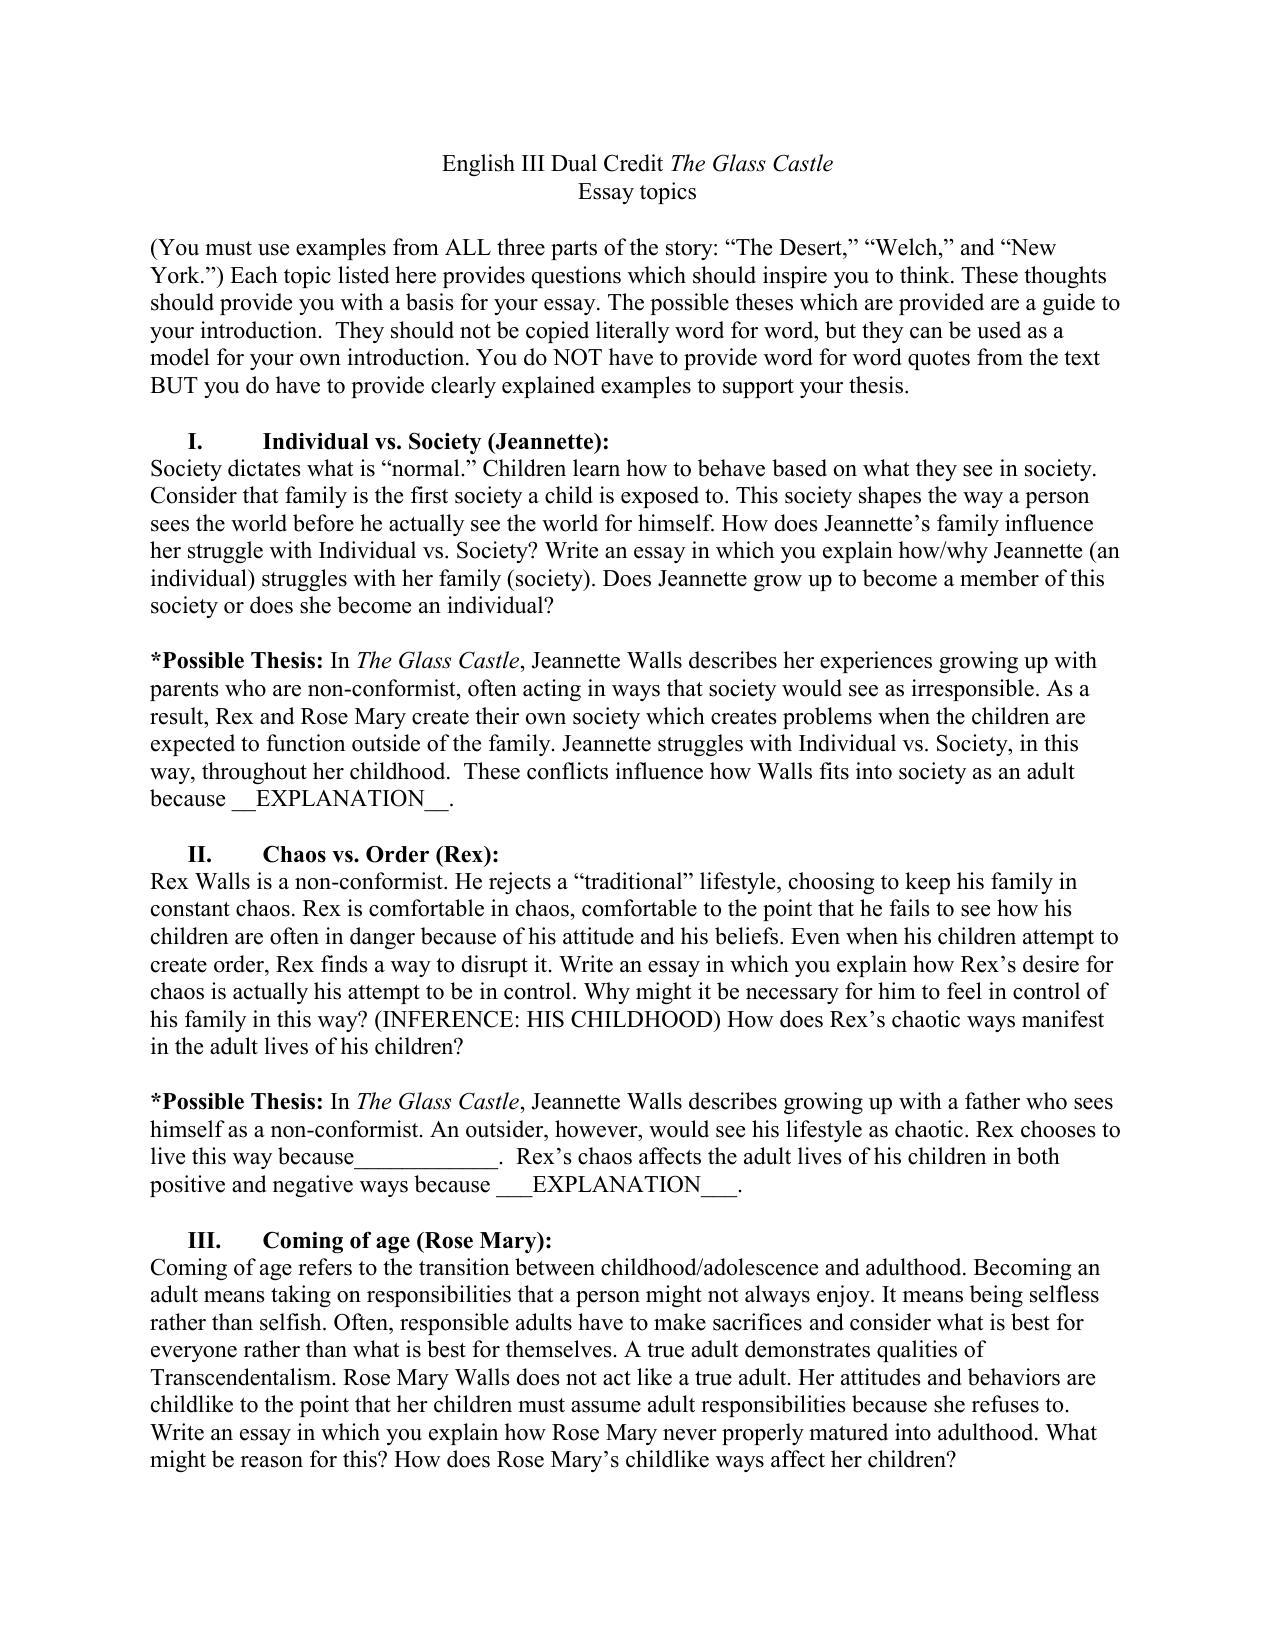 the glass essay the glass essay analysis famous college essays famous college vietnam culture essay african american civil rights